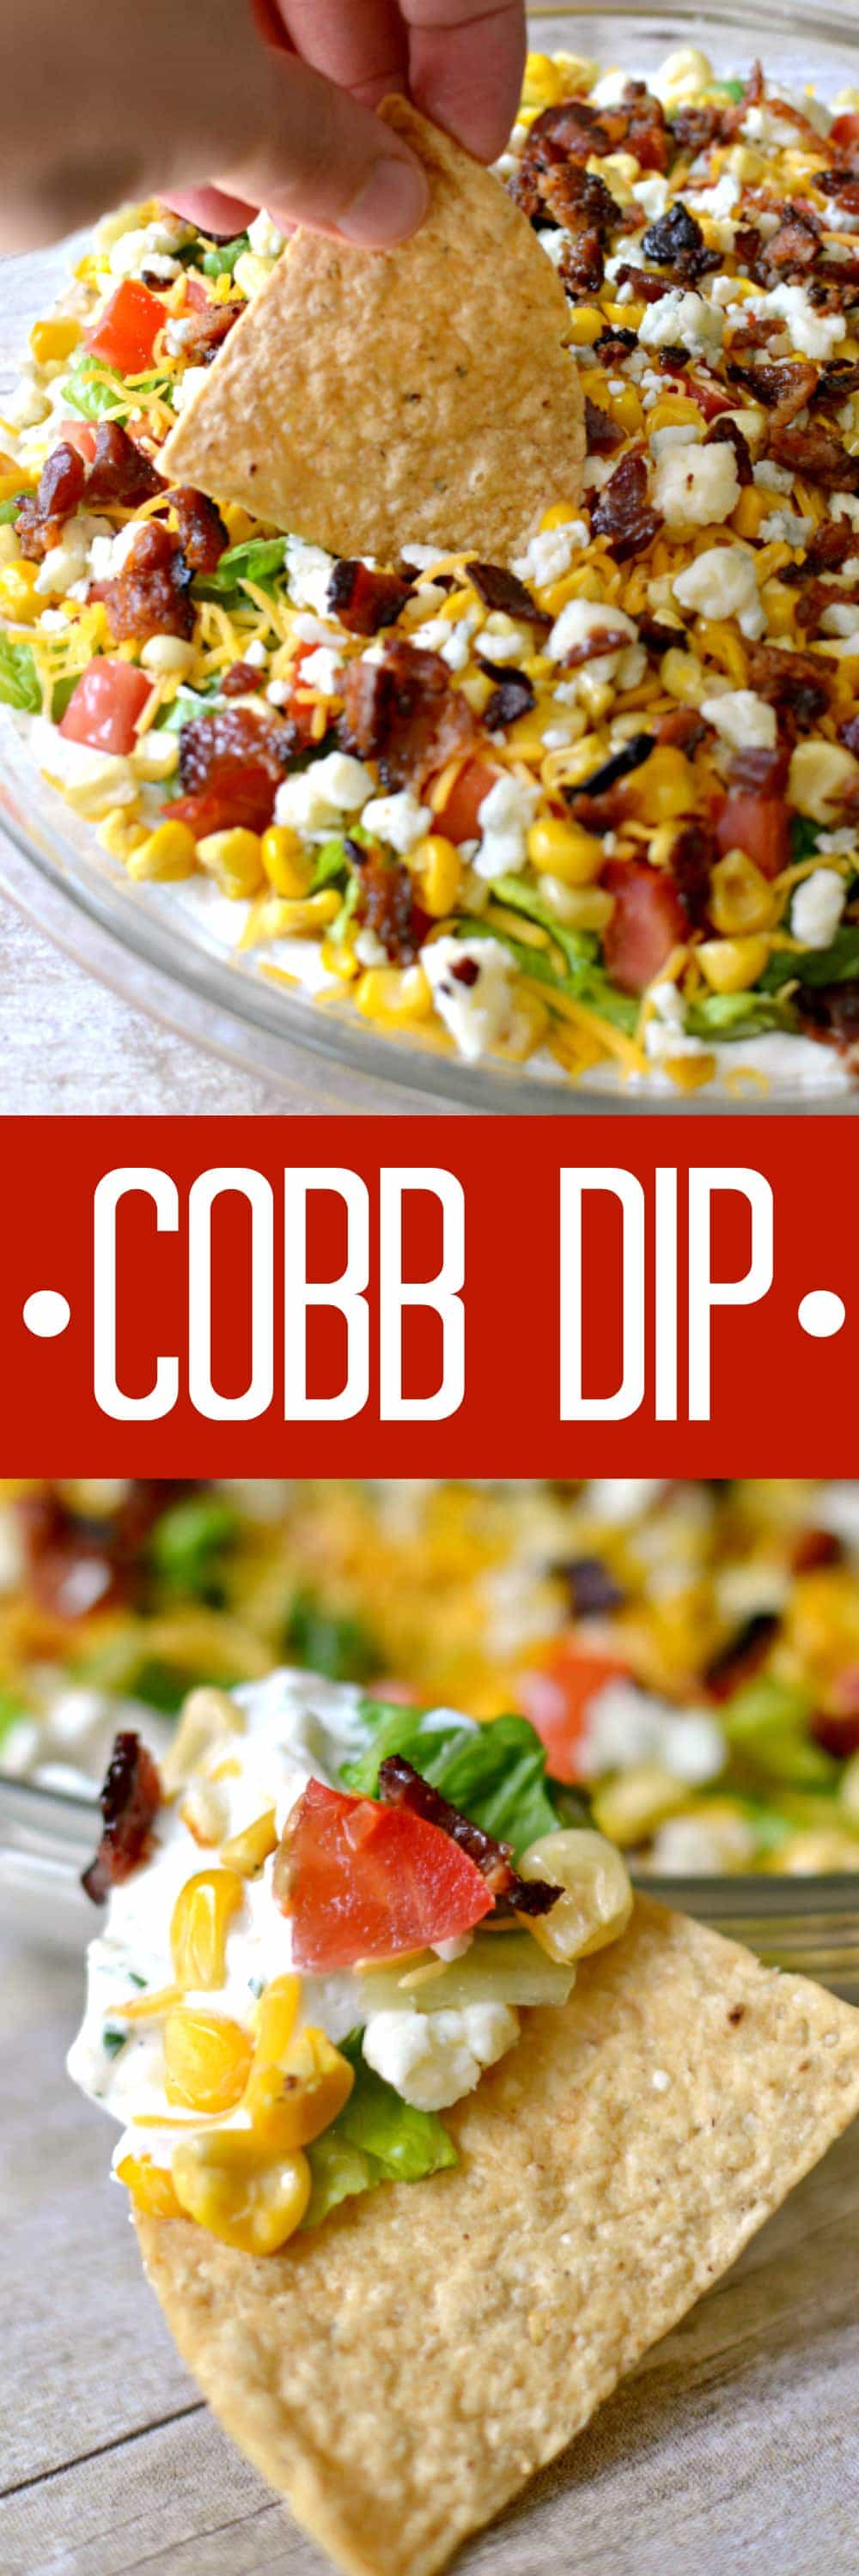 Cobb Dip is a delicious light dip made with creamy ranch, lettuce, tomatoes, grilled corn, shredded cheese, bacon, and blue cheese crumbles. The perfect party dip recipe!